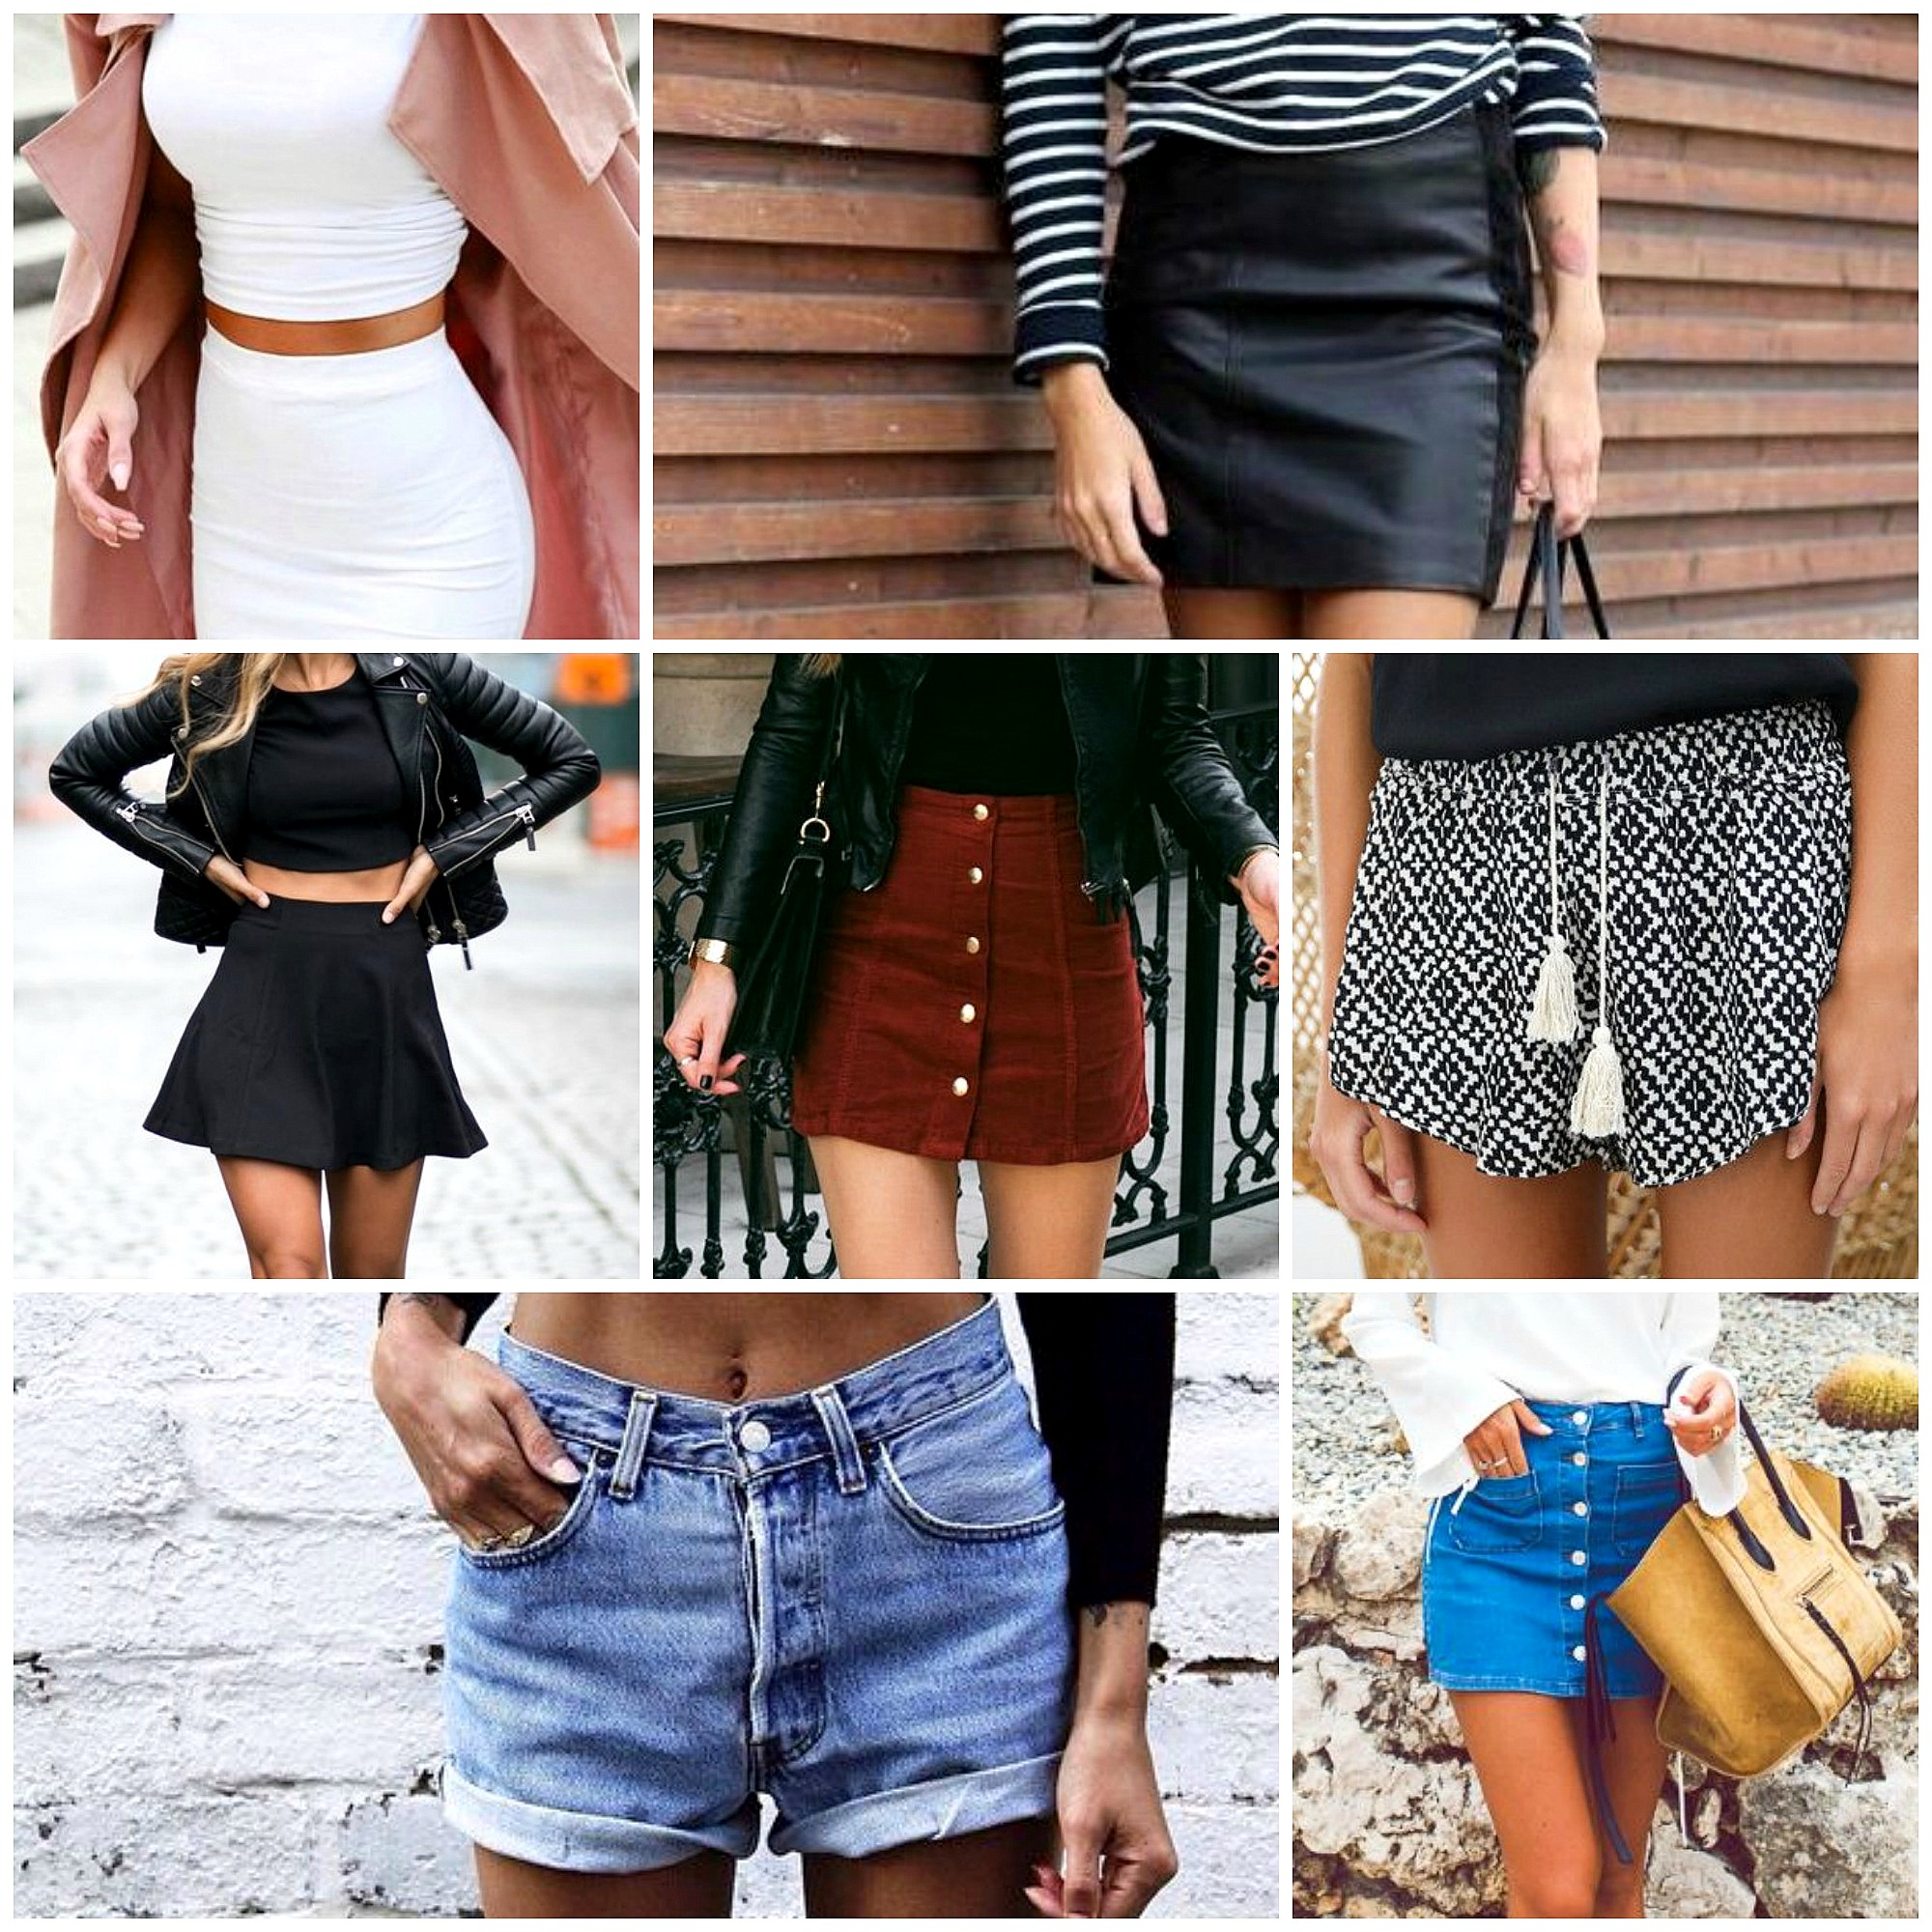 Skirts outfit